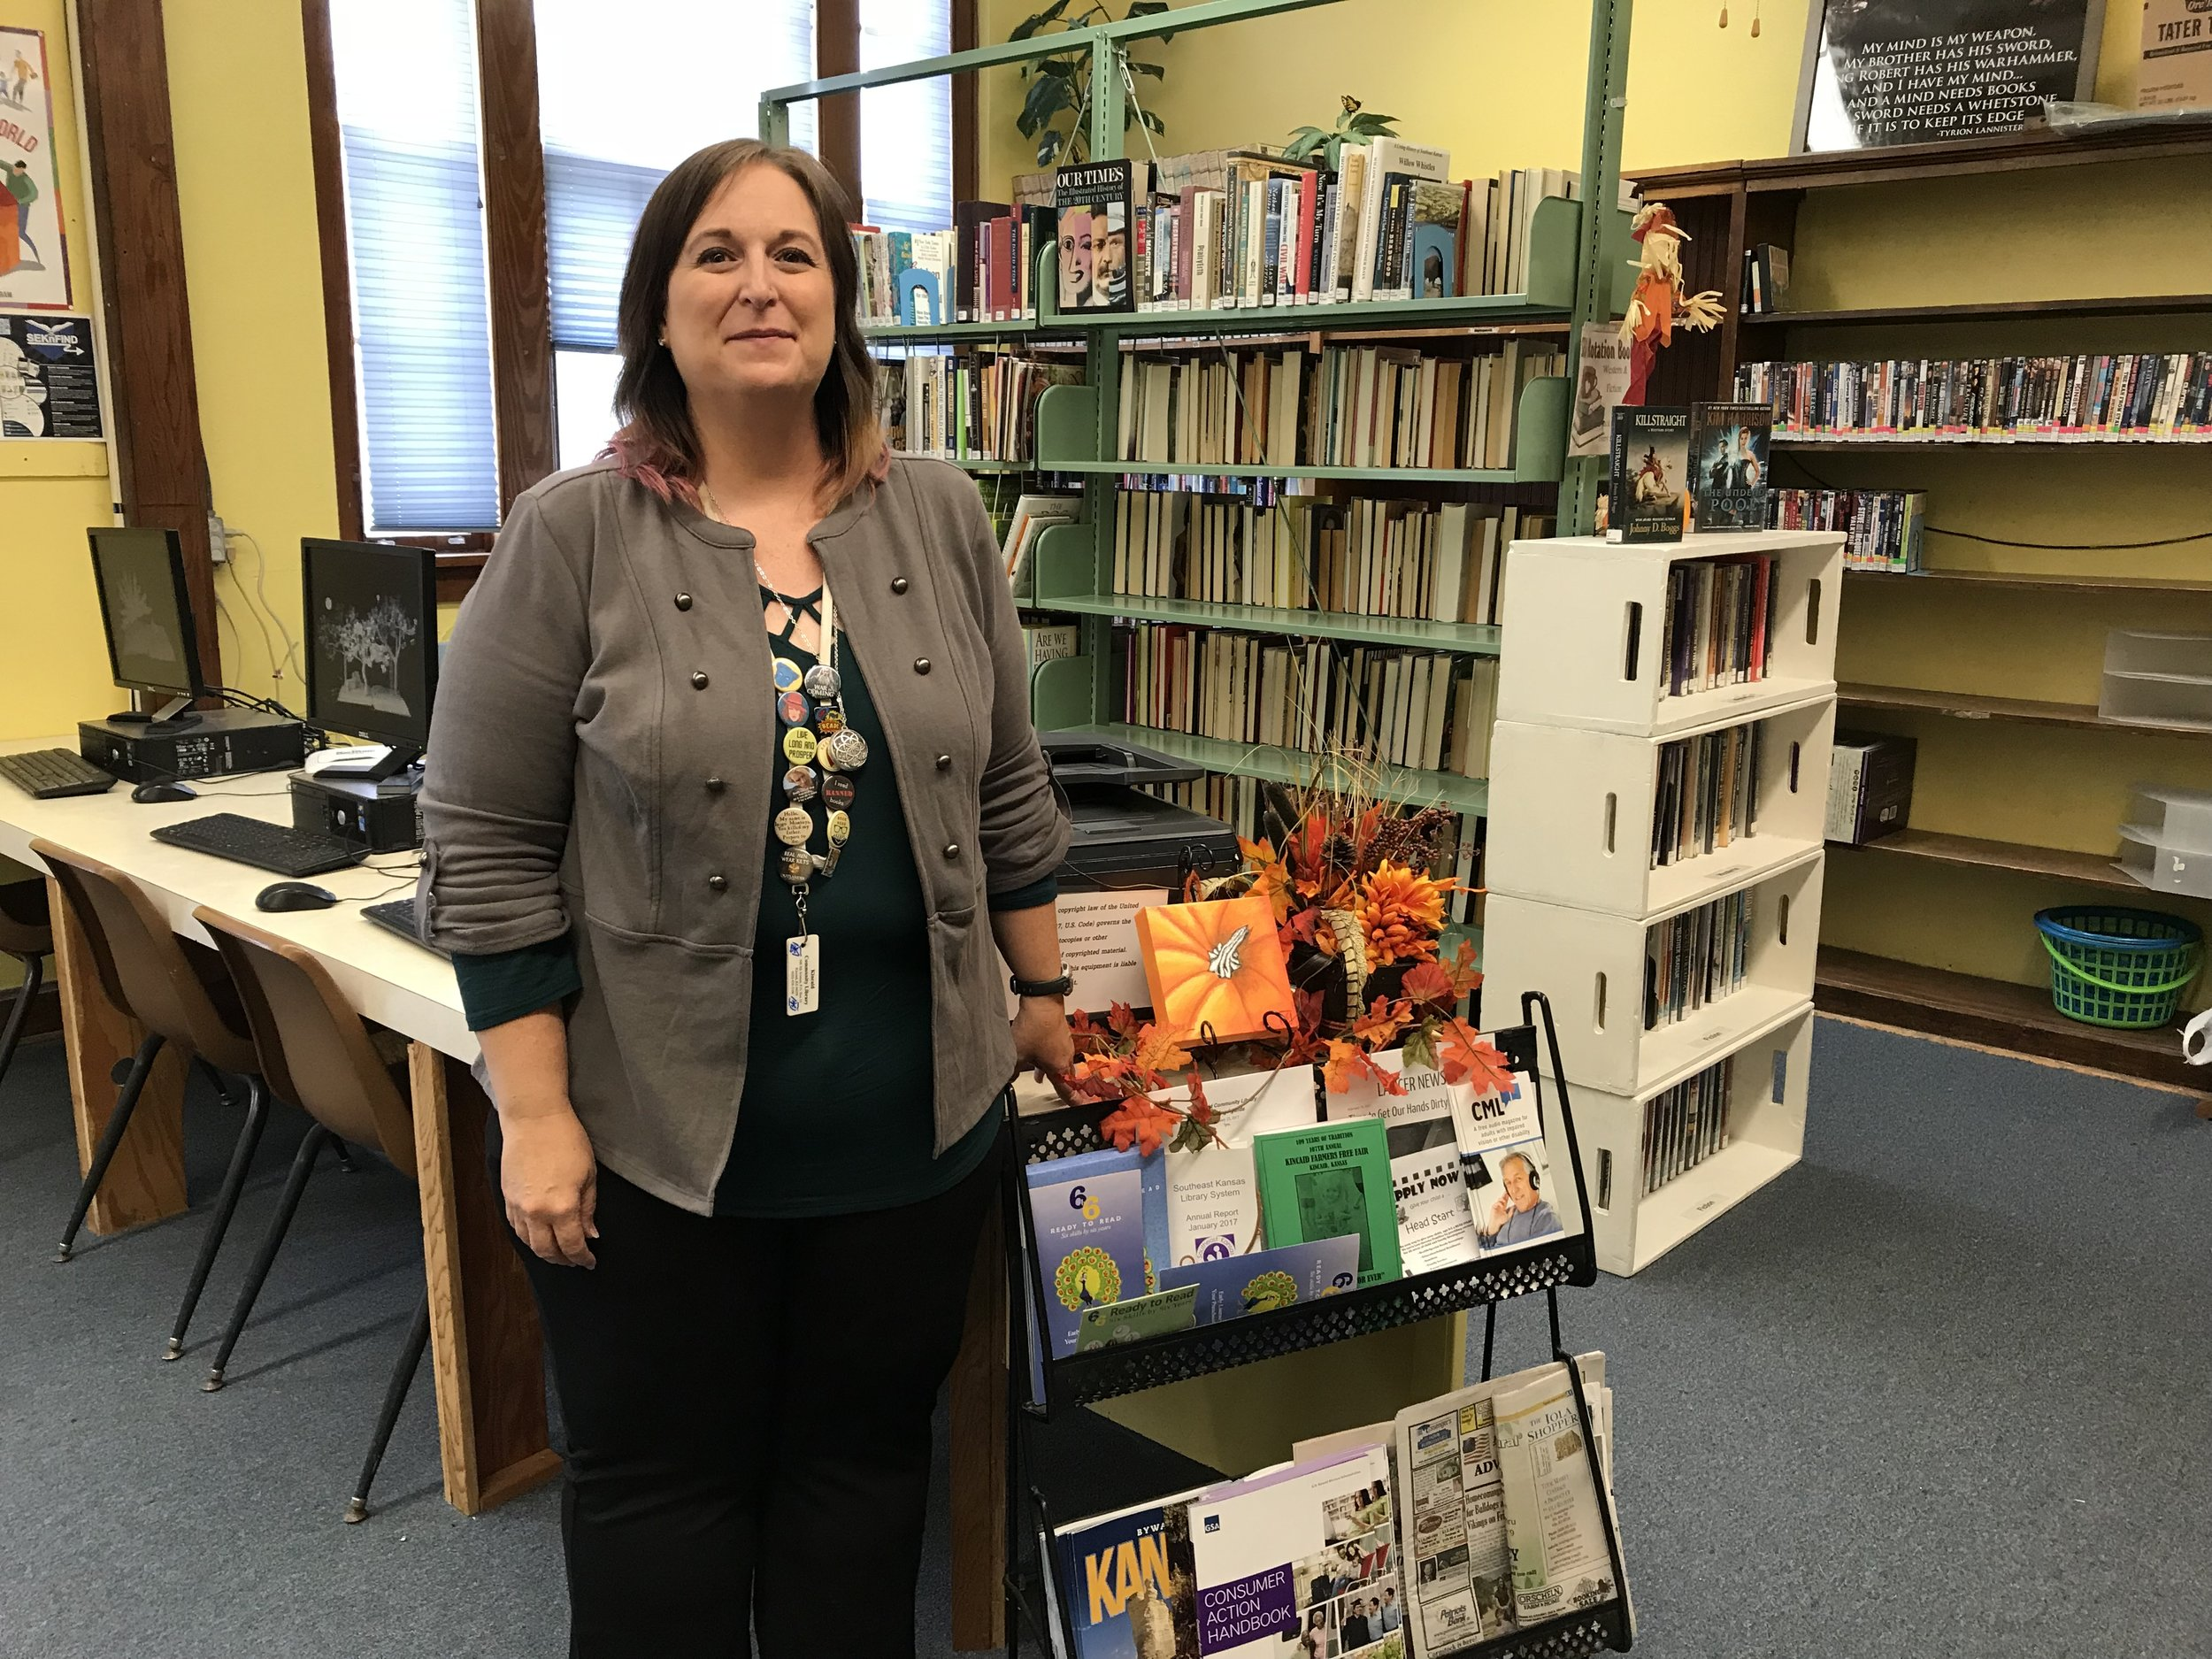 Citizen-librarian Jennifer Gum-Fowler helped found and now runs the Kincaid public library.